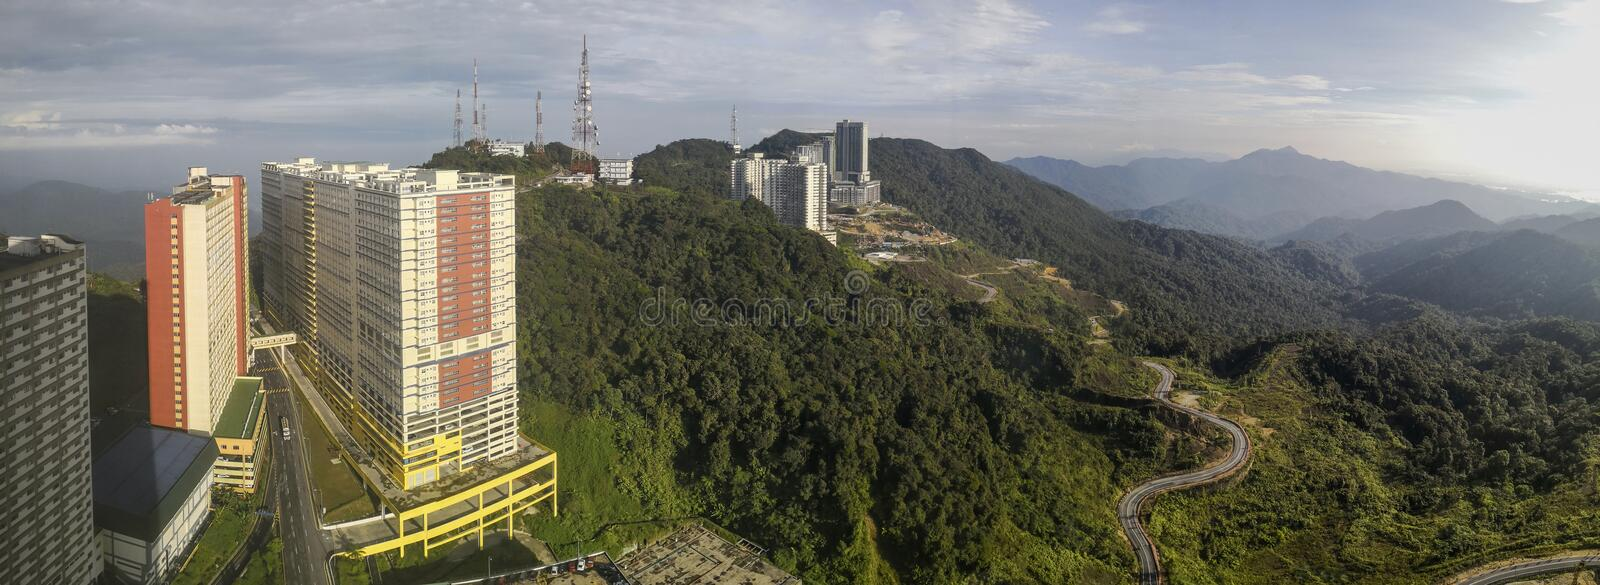 Panoramic shot of Genting Landscape in Bentong, Pahang, Malaysia. Genting Highlands, Malaysia - May 15 2019 stock images